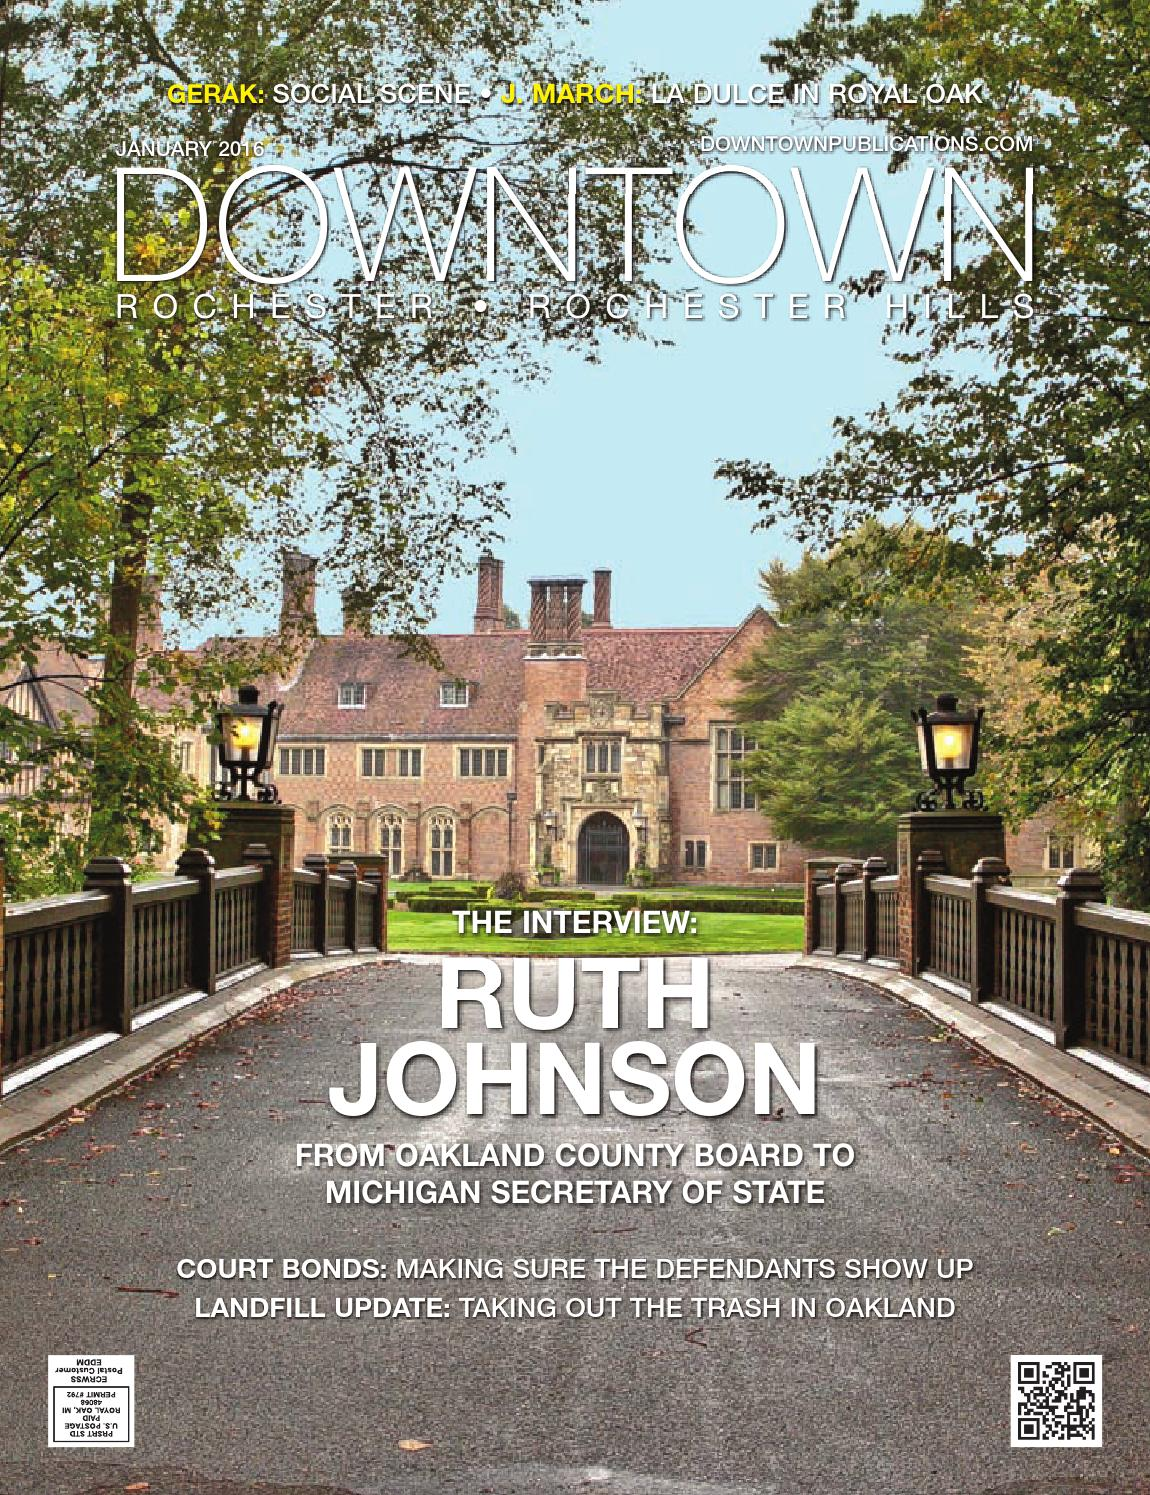 downtown rochester rochester hills by downtown publications inc